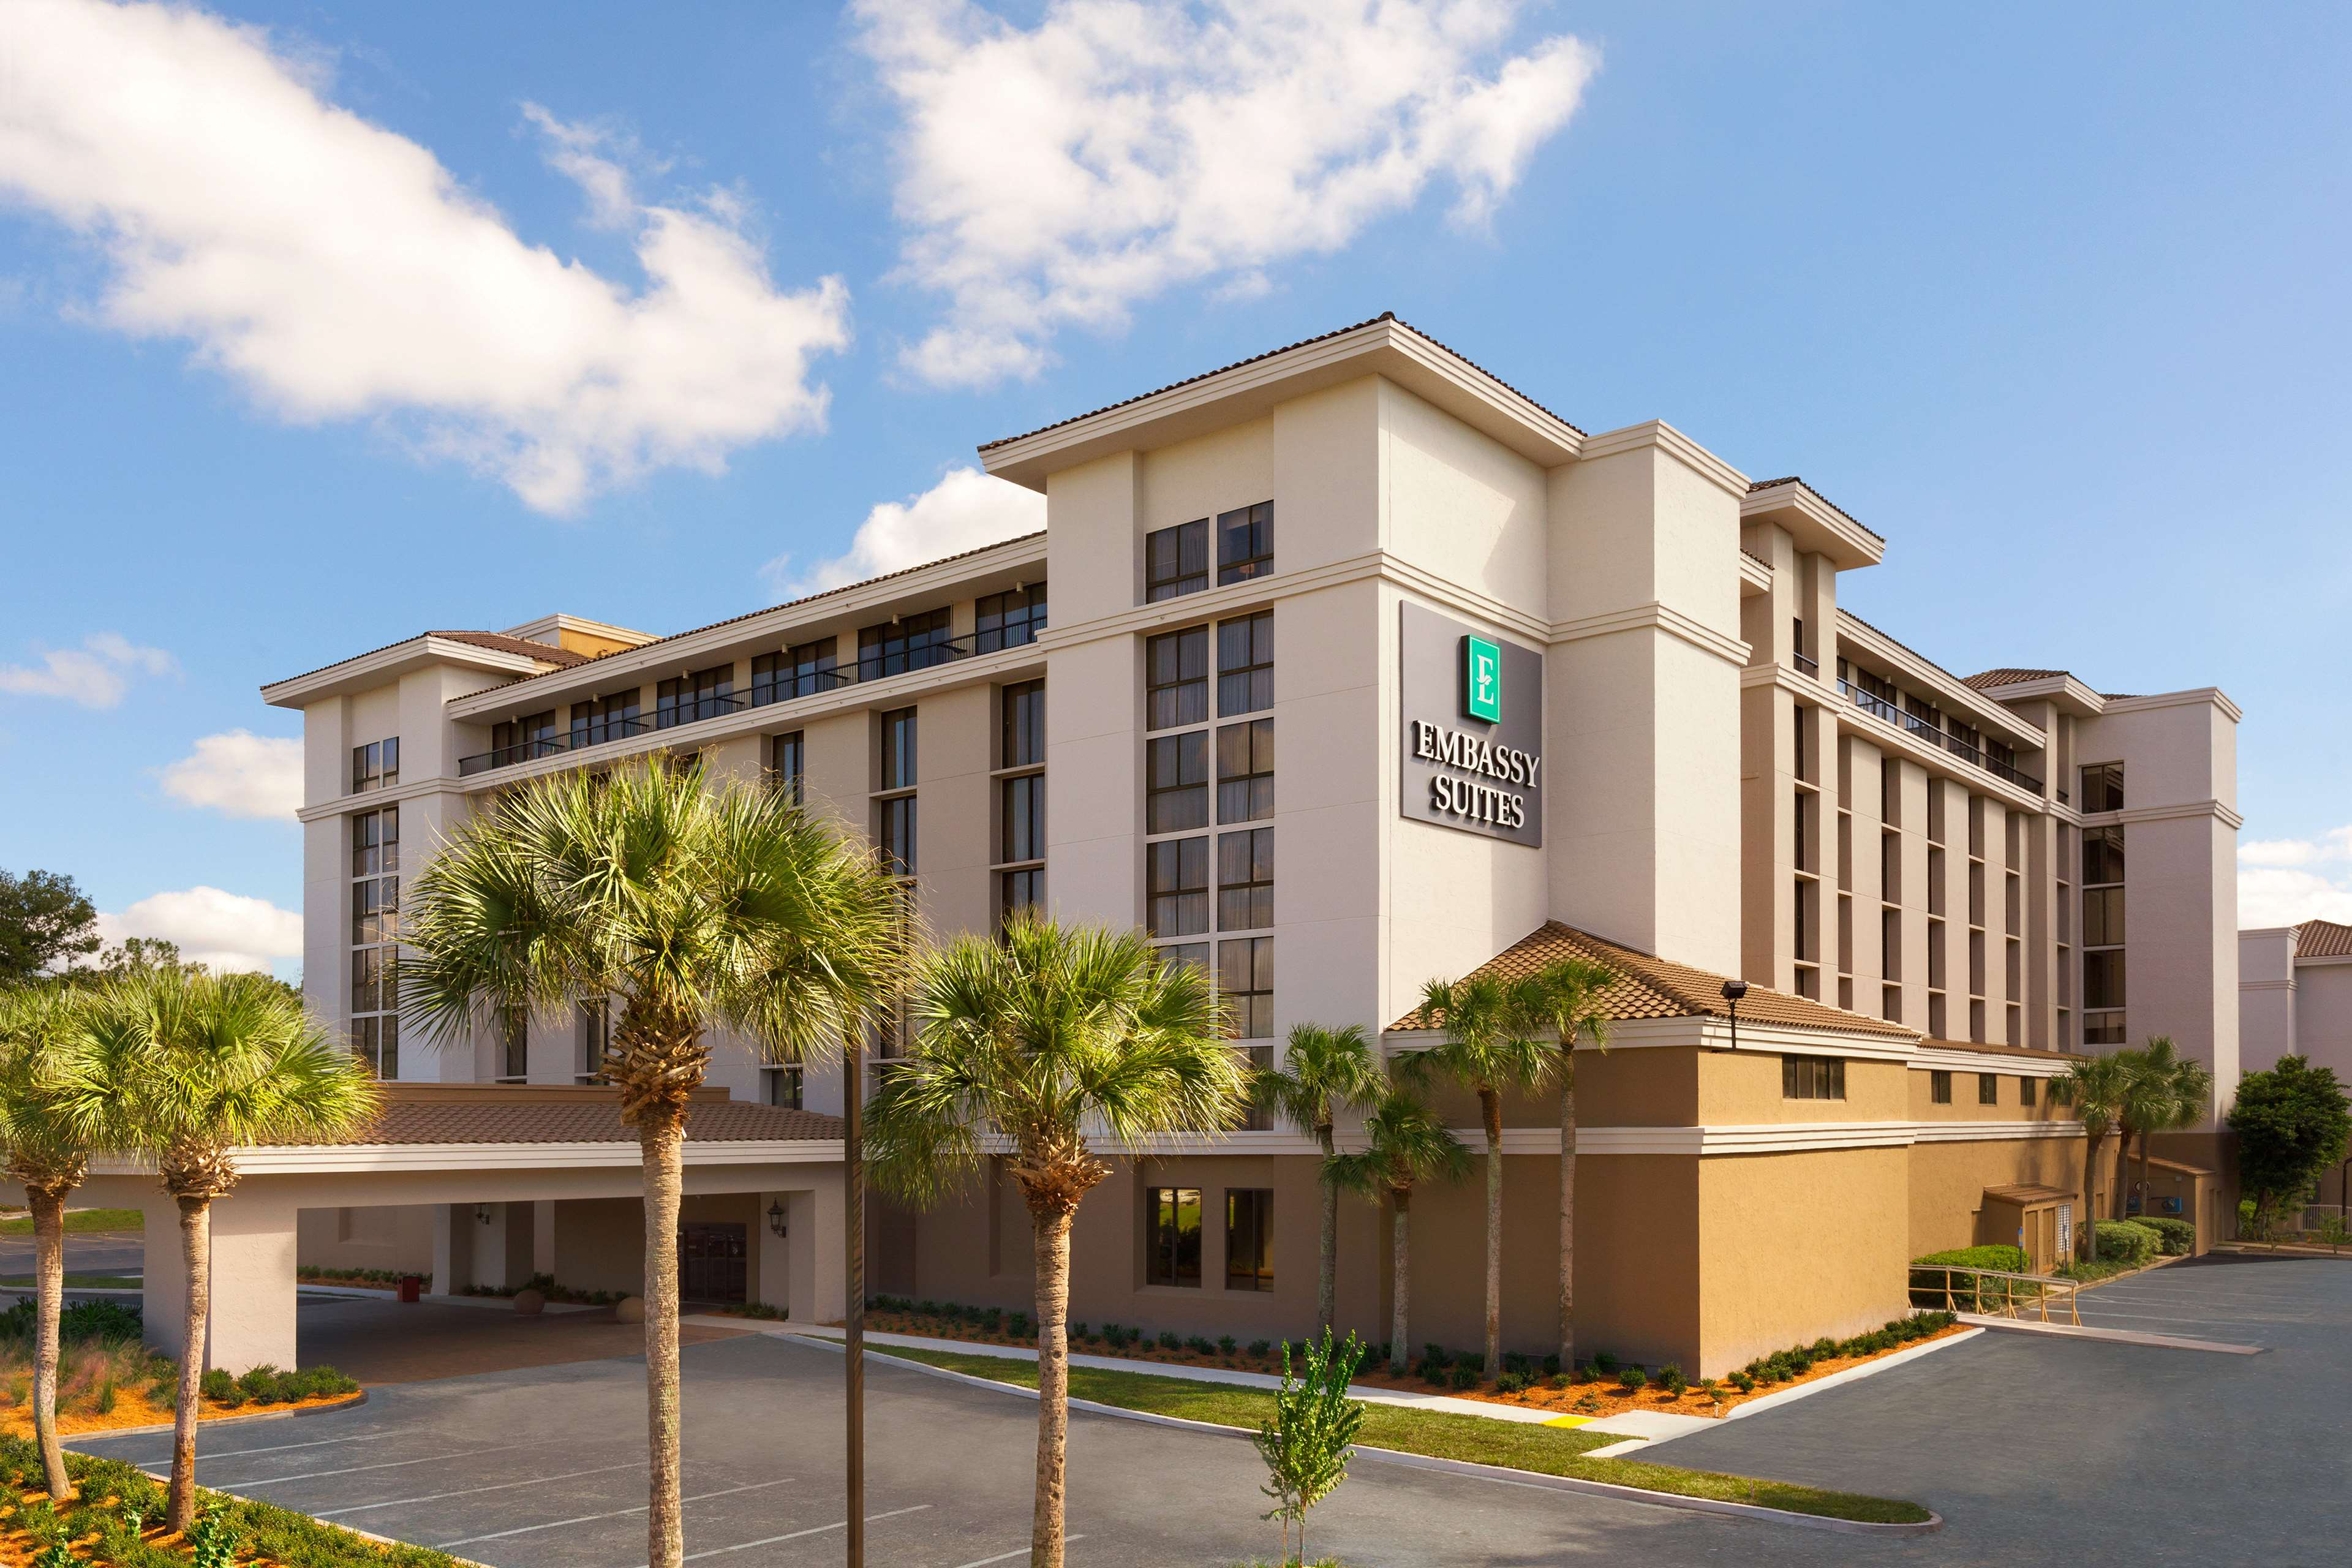 Embassy Suites by Hilton Jacksonville Baymeadows image 1